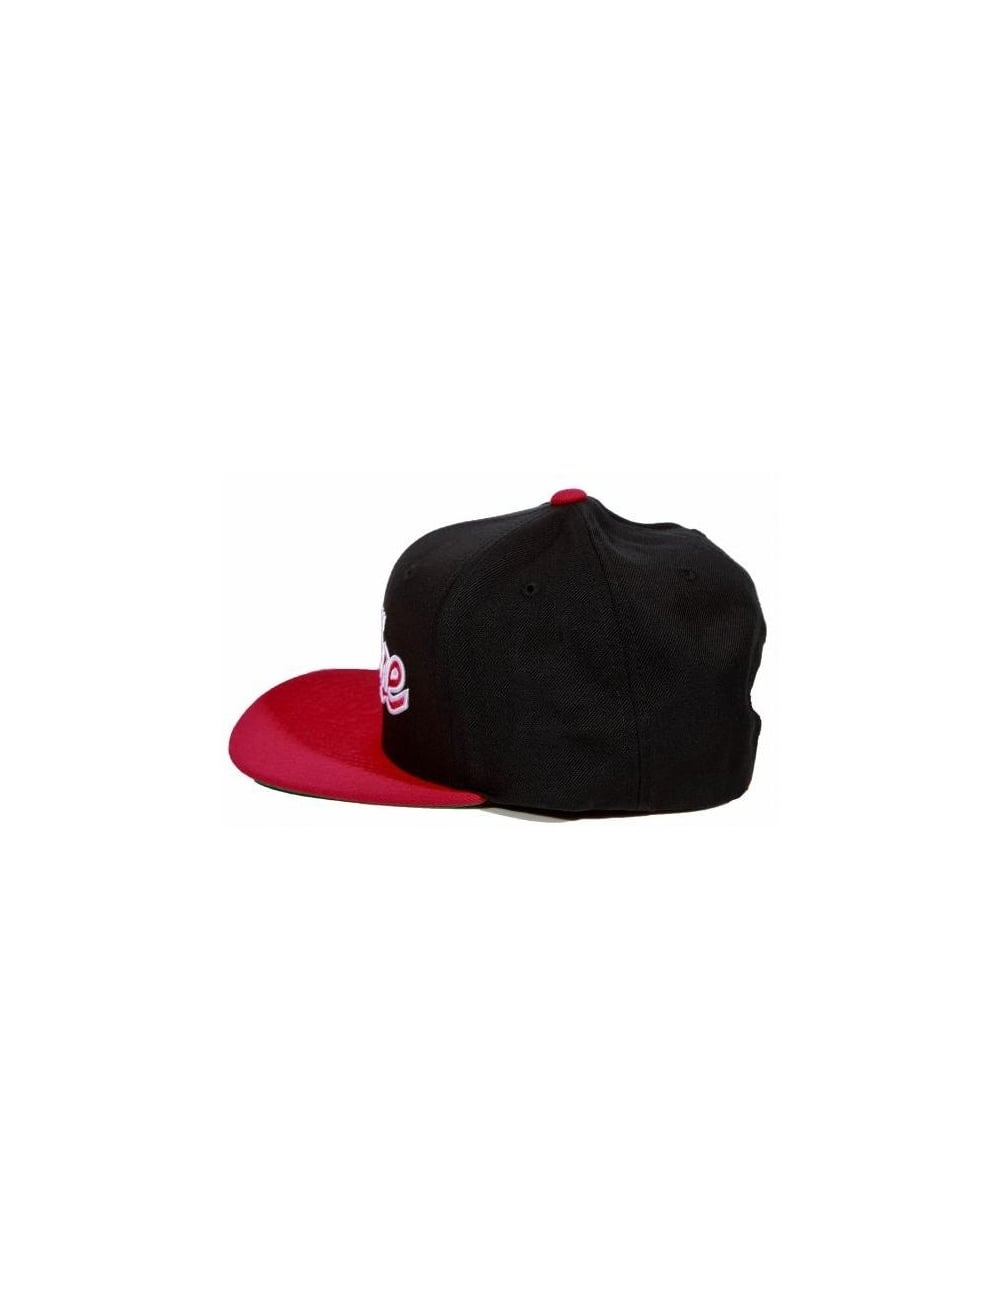 Obey Clothing Obey Posse Snapback - Black Red - Hat Shop from Fat ... 722f3b5d09b6